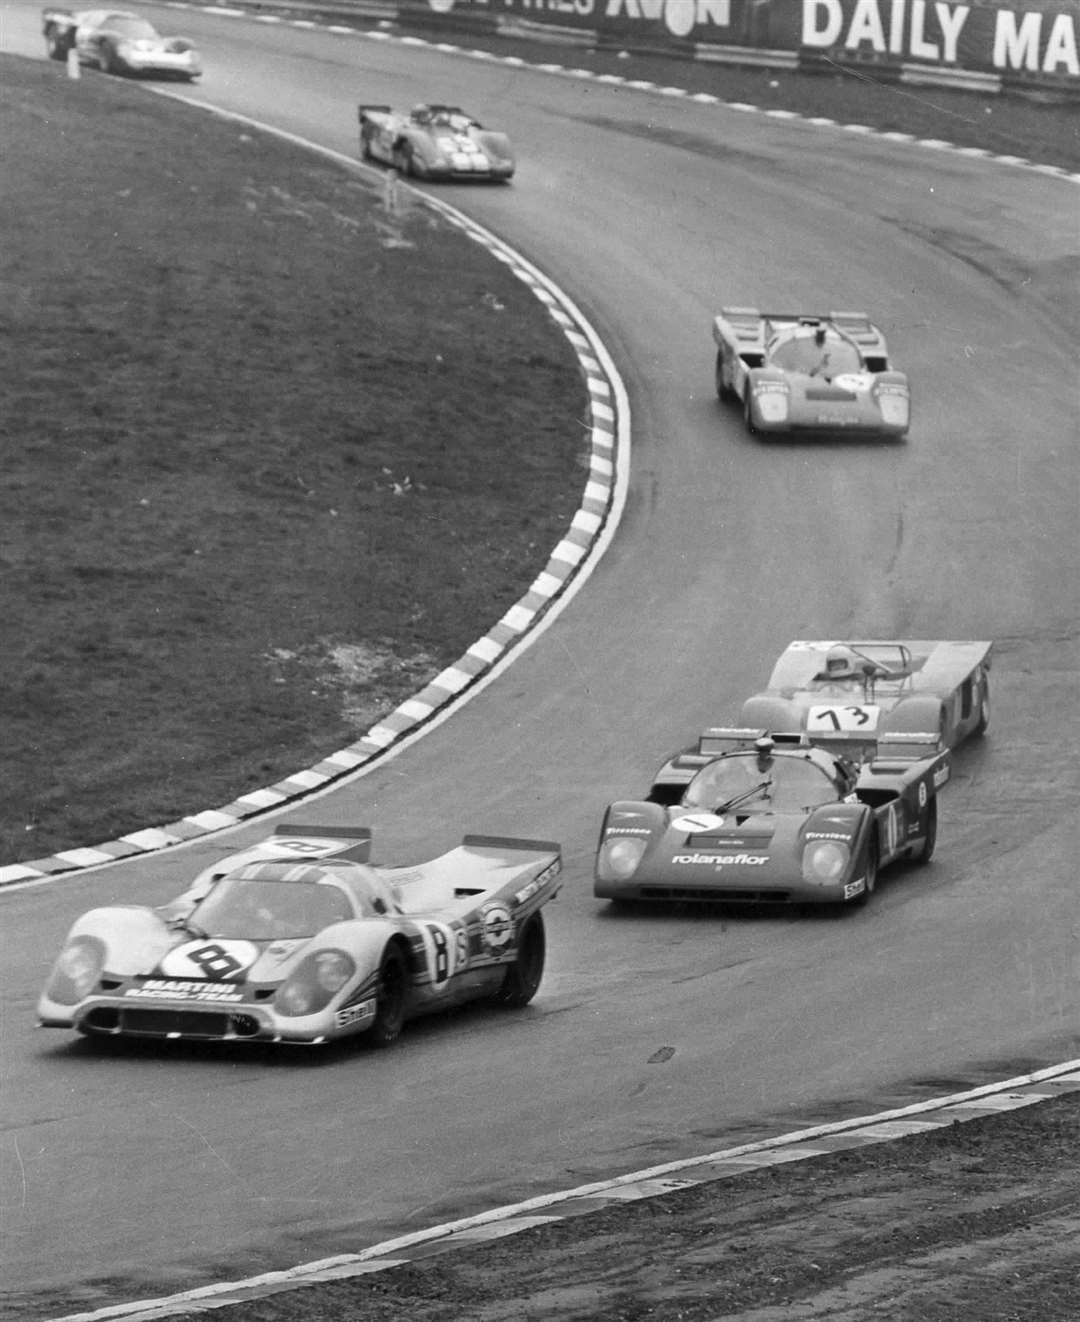 Sportscar action on the fearsome 2.4-mile Brands Hatch Grand Prix circuit in 1971